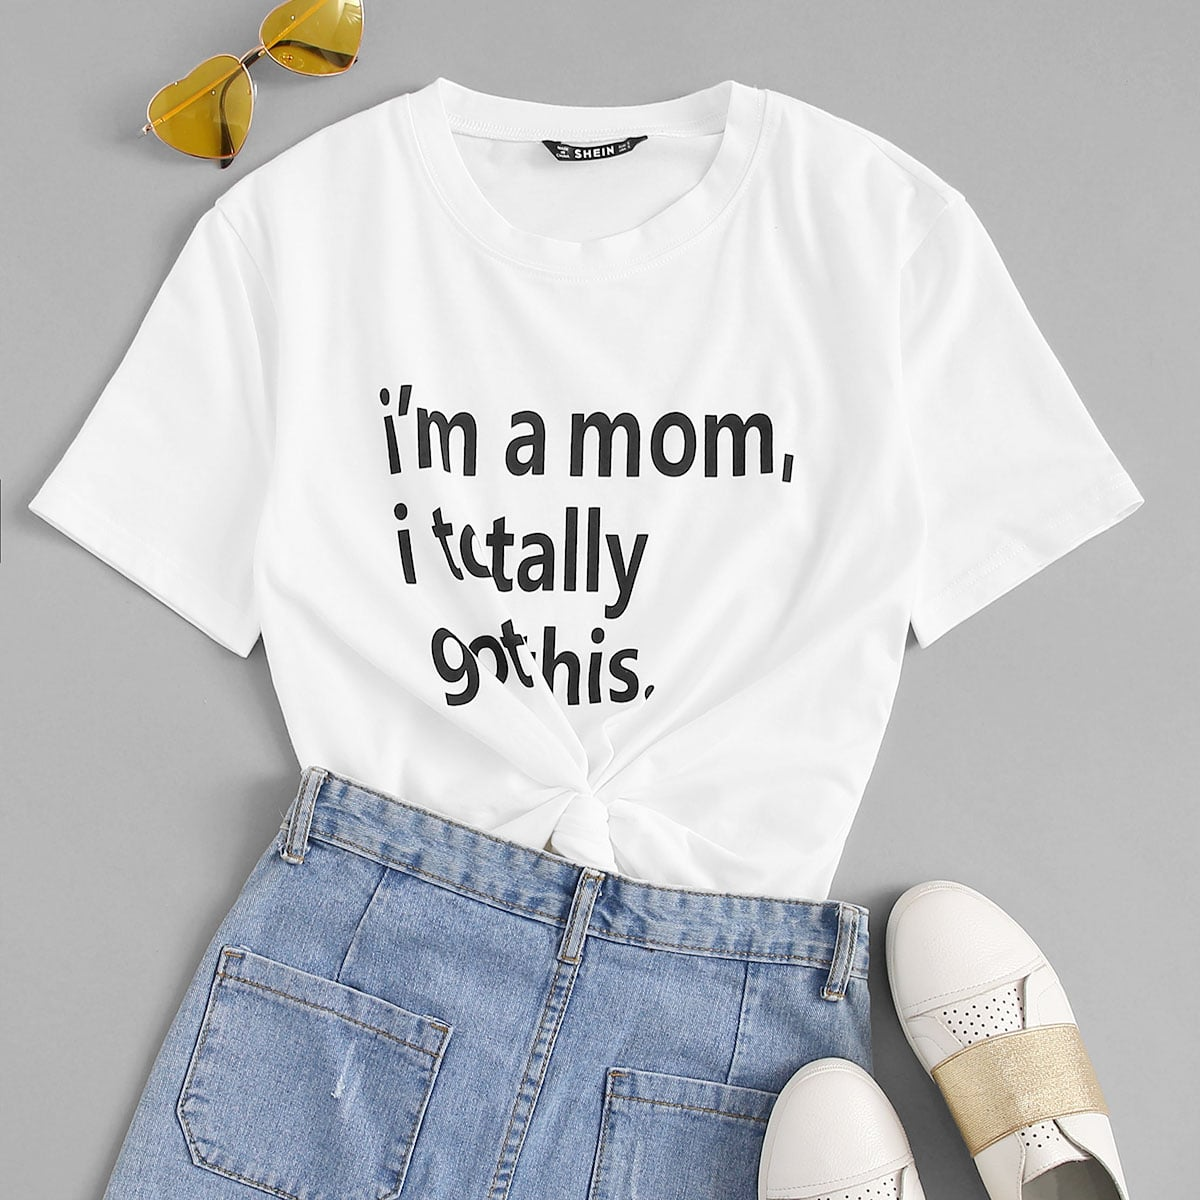 SHEIN coupon: I am a Mom Graphic Short Sleeve Tee